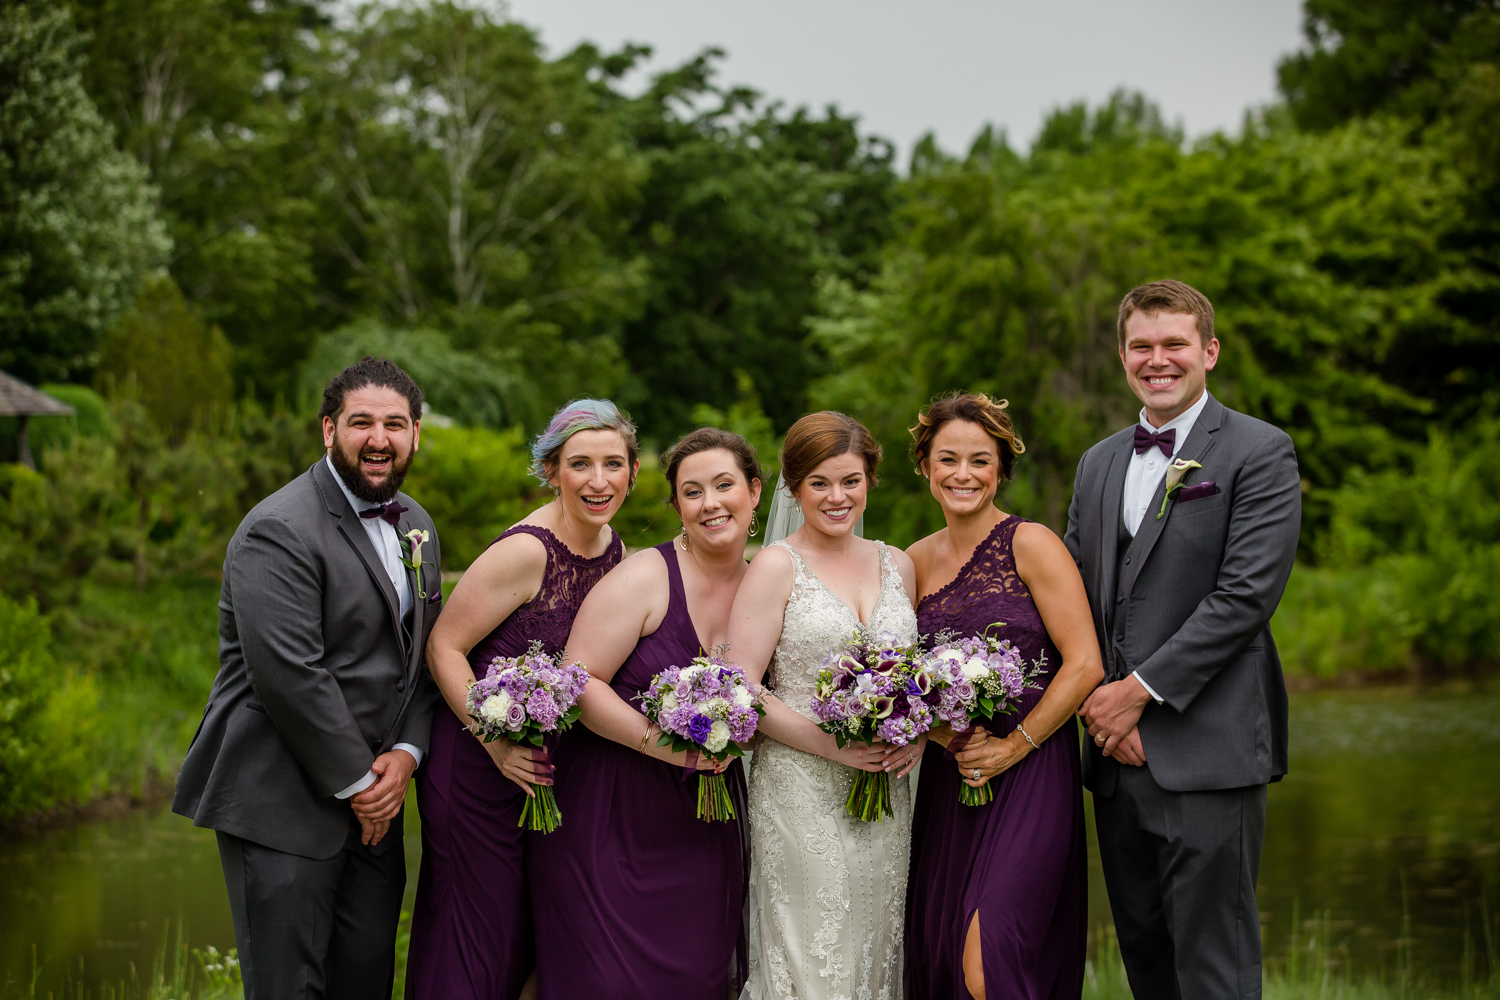 Wedding Party at University of Illinois Arboretum